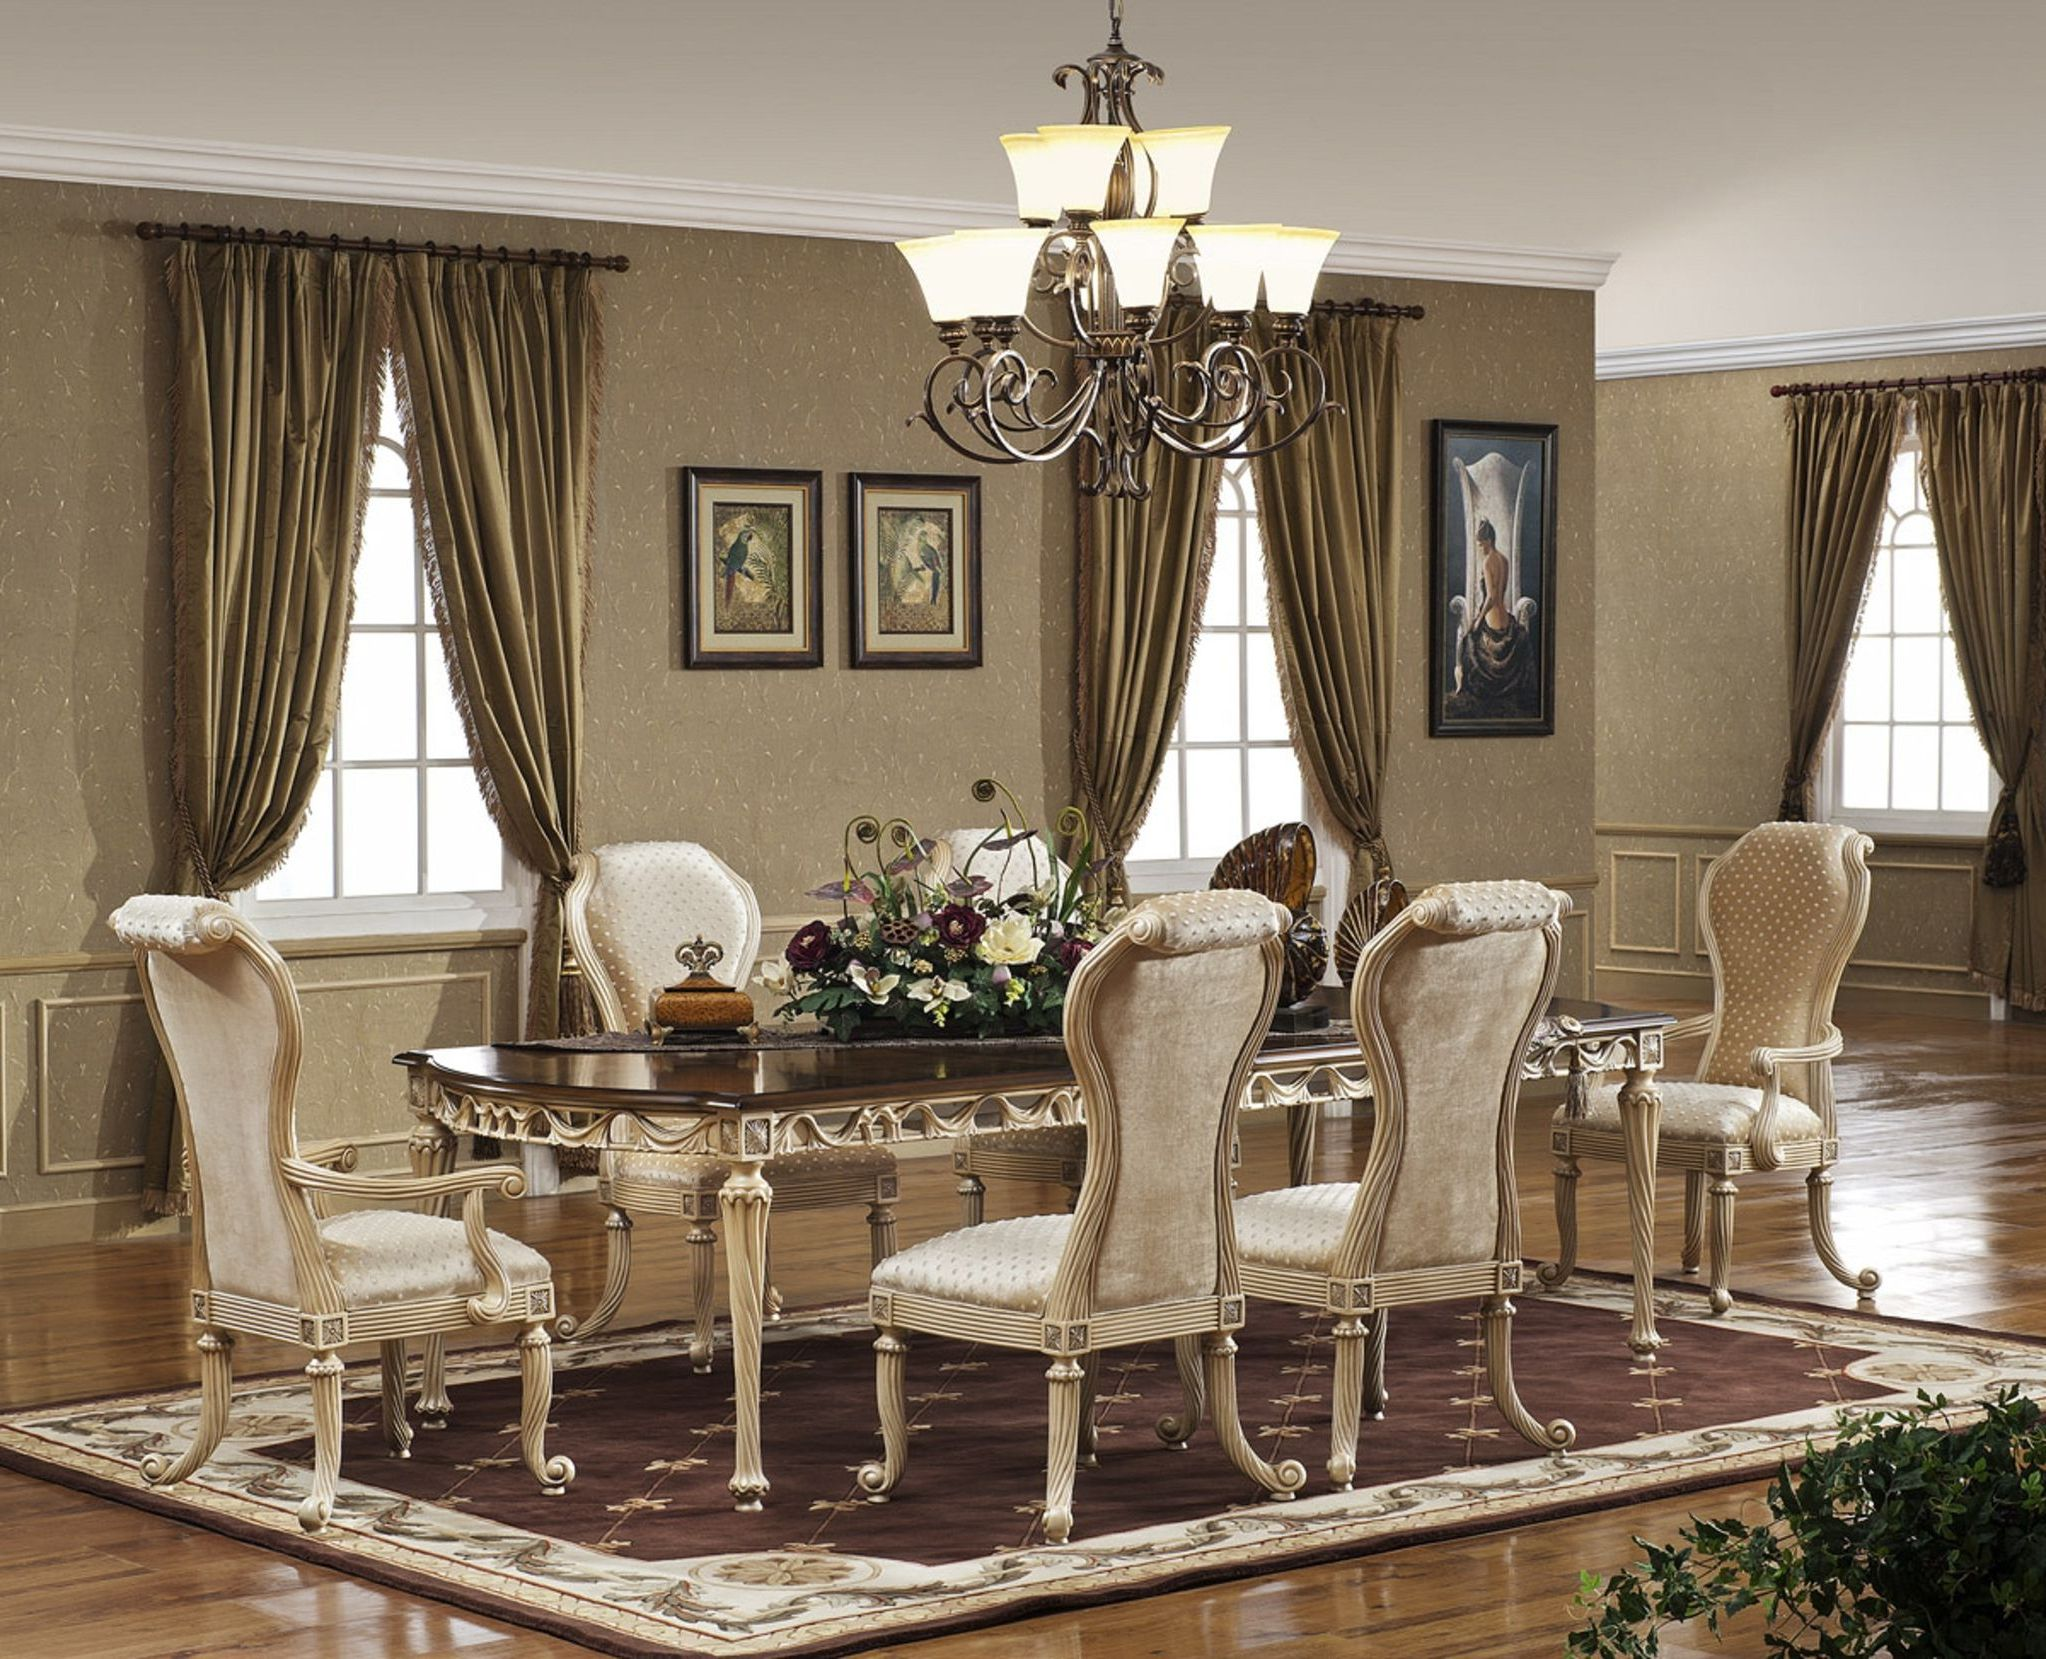 Dining room table and chairs ideas with images for Dining room table 2